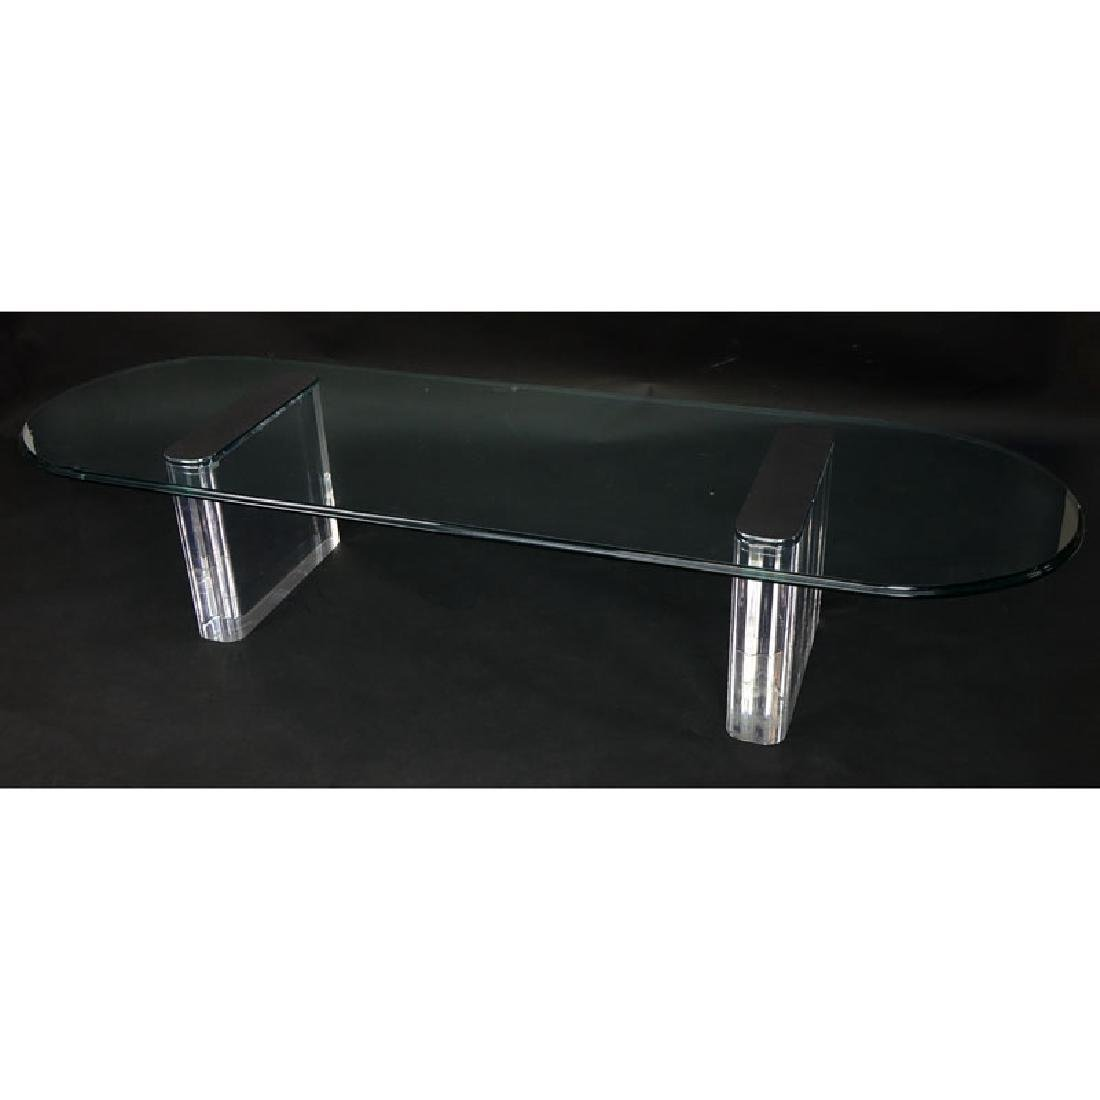 Vintage Lucite, Chrome and Glass Coffee Table